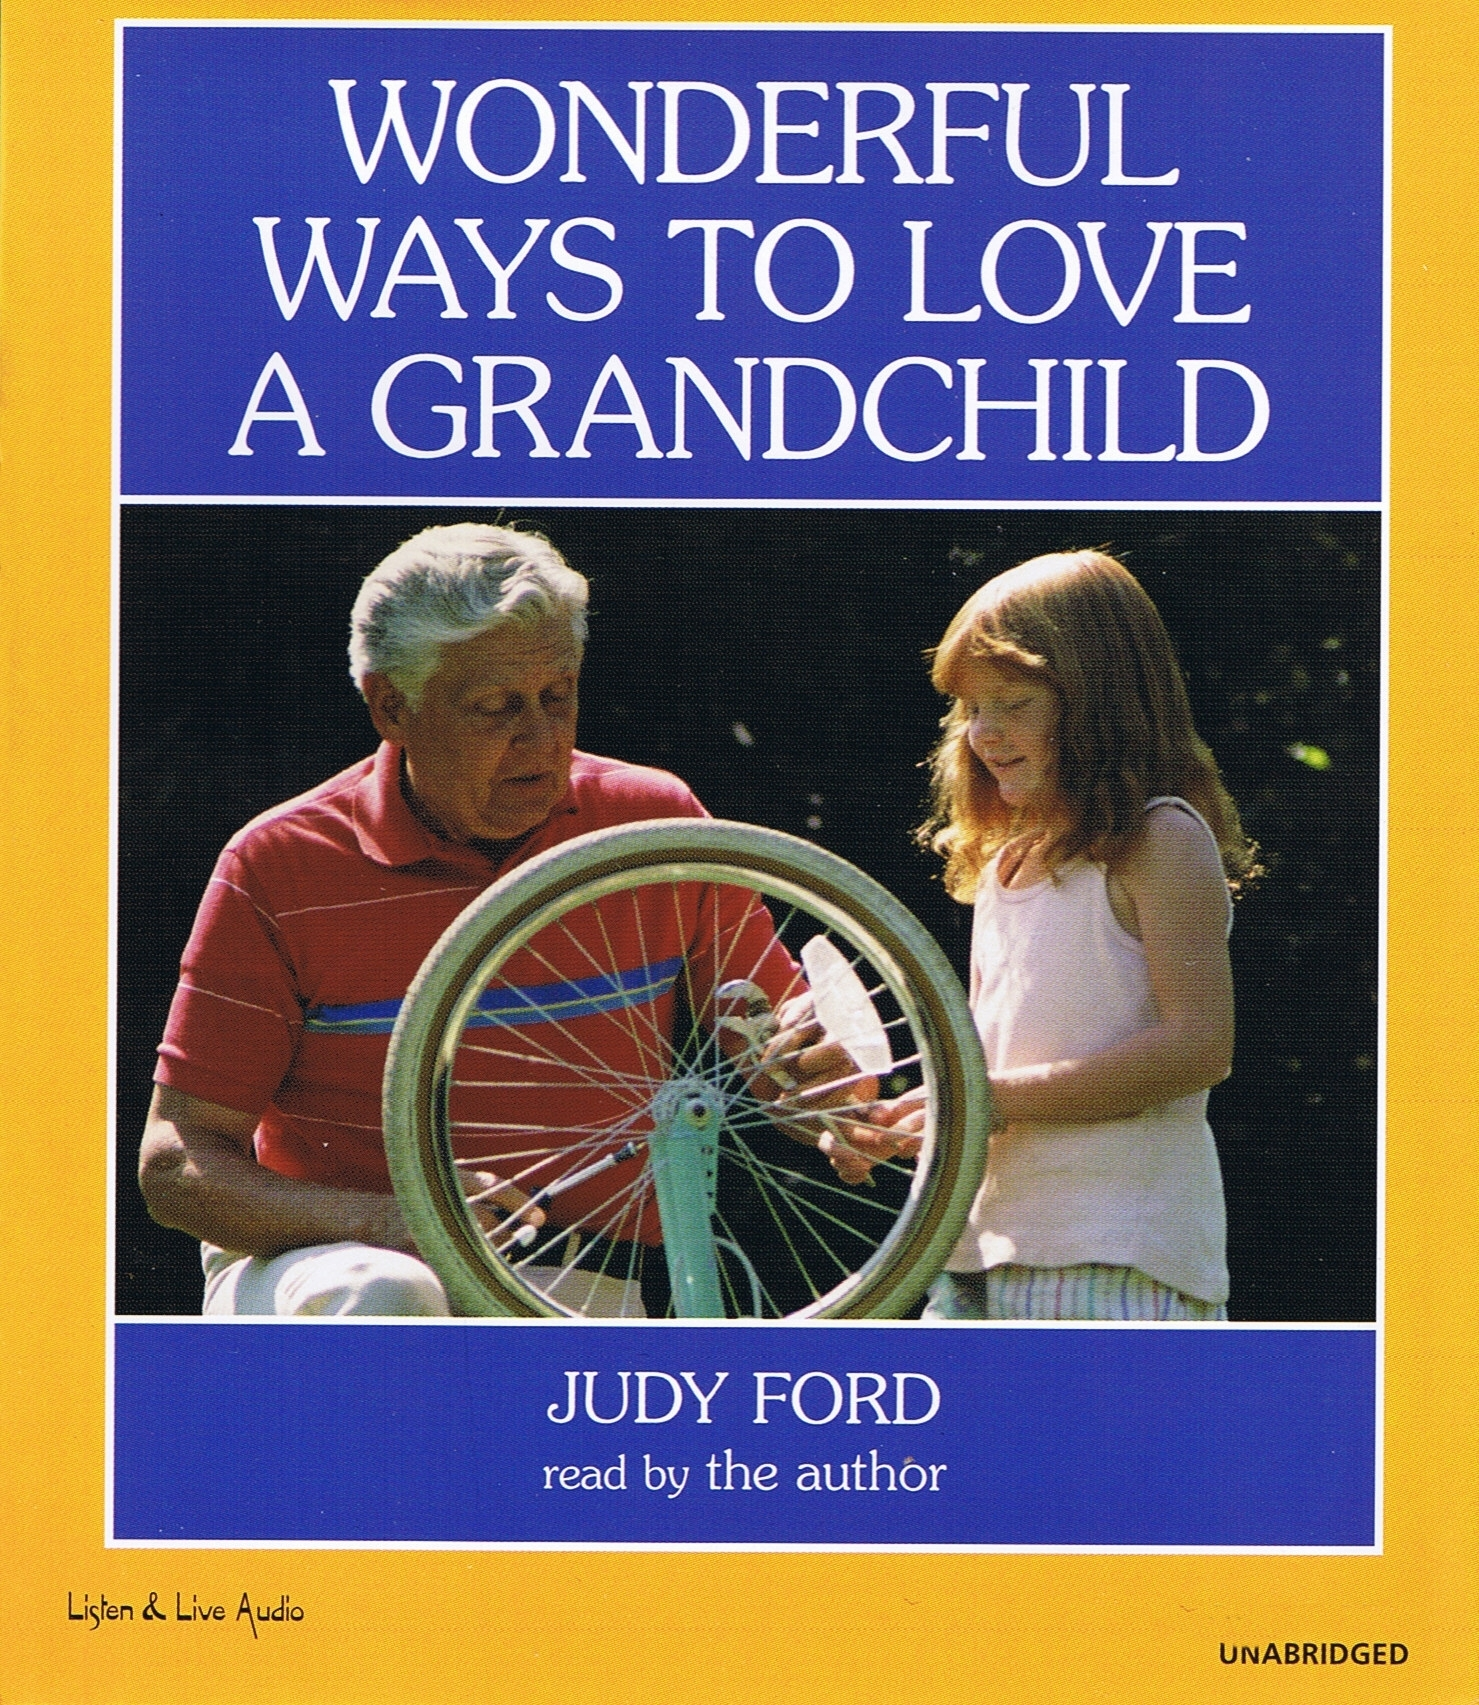 Wonderful Ways To Love A Grandchild [3CD]